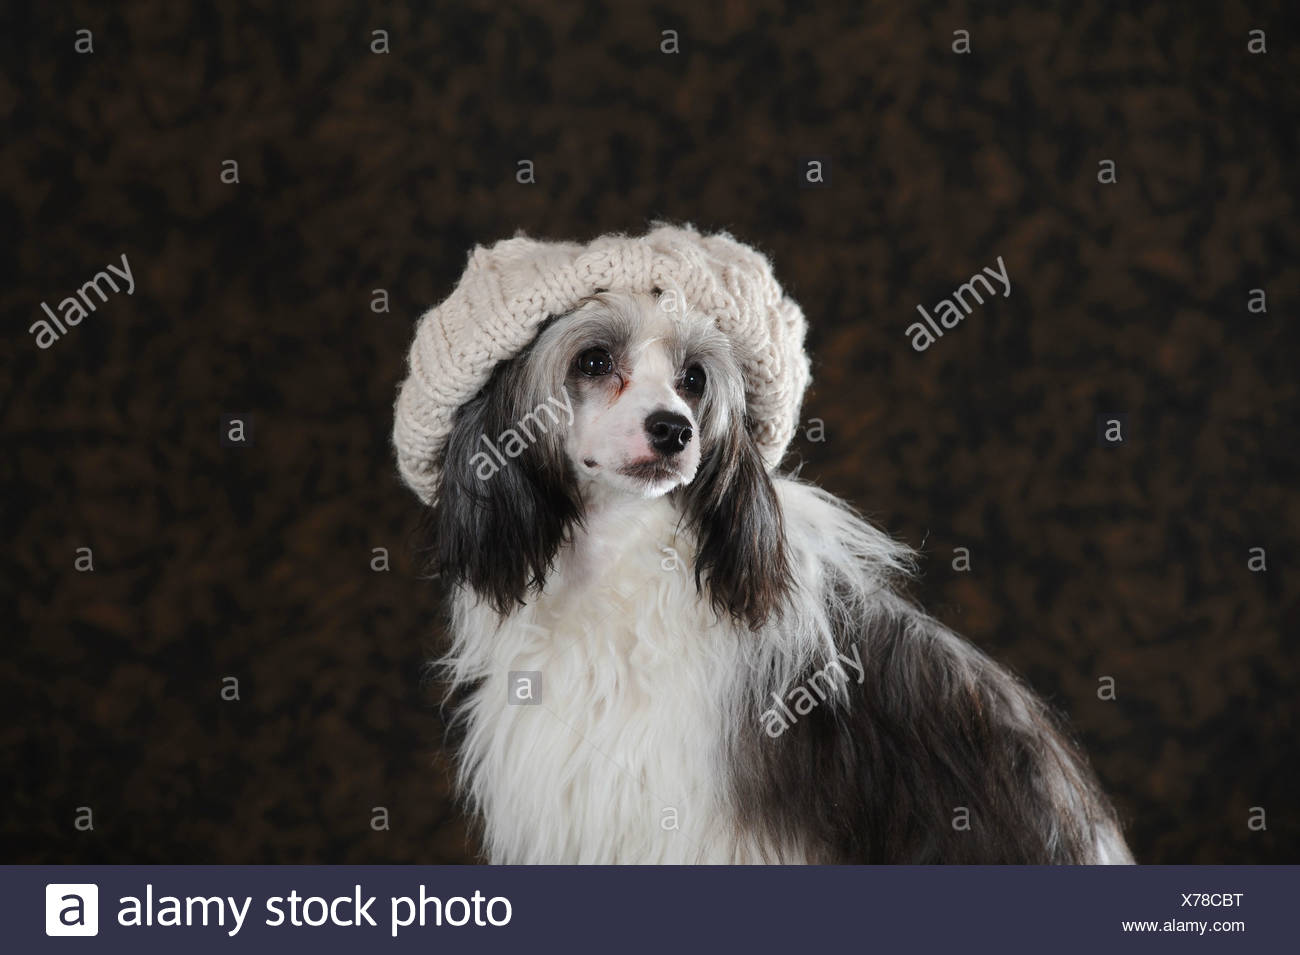 Chinese Crested Hairless Dog, Powderpuff, wearing a light-coloured knitted cap - Stock Image